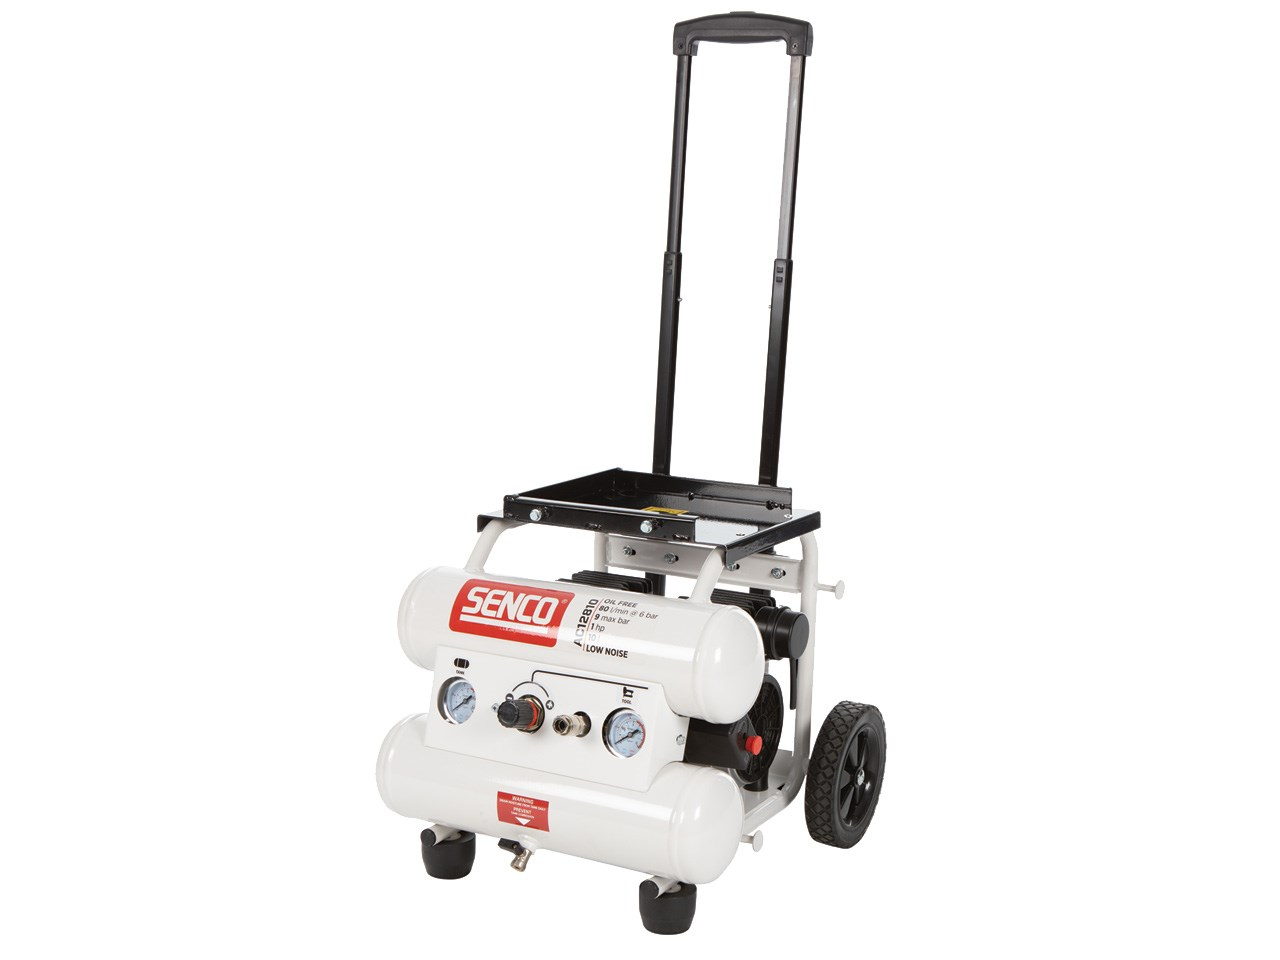 SENCO TP12810 9BAR stille compressor